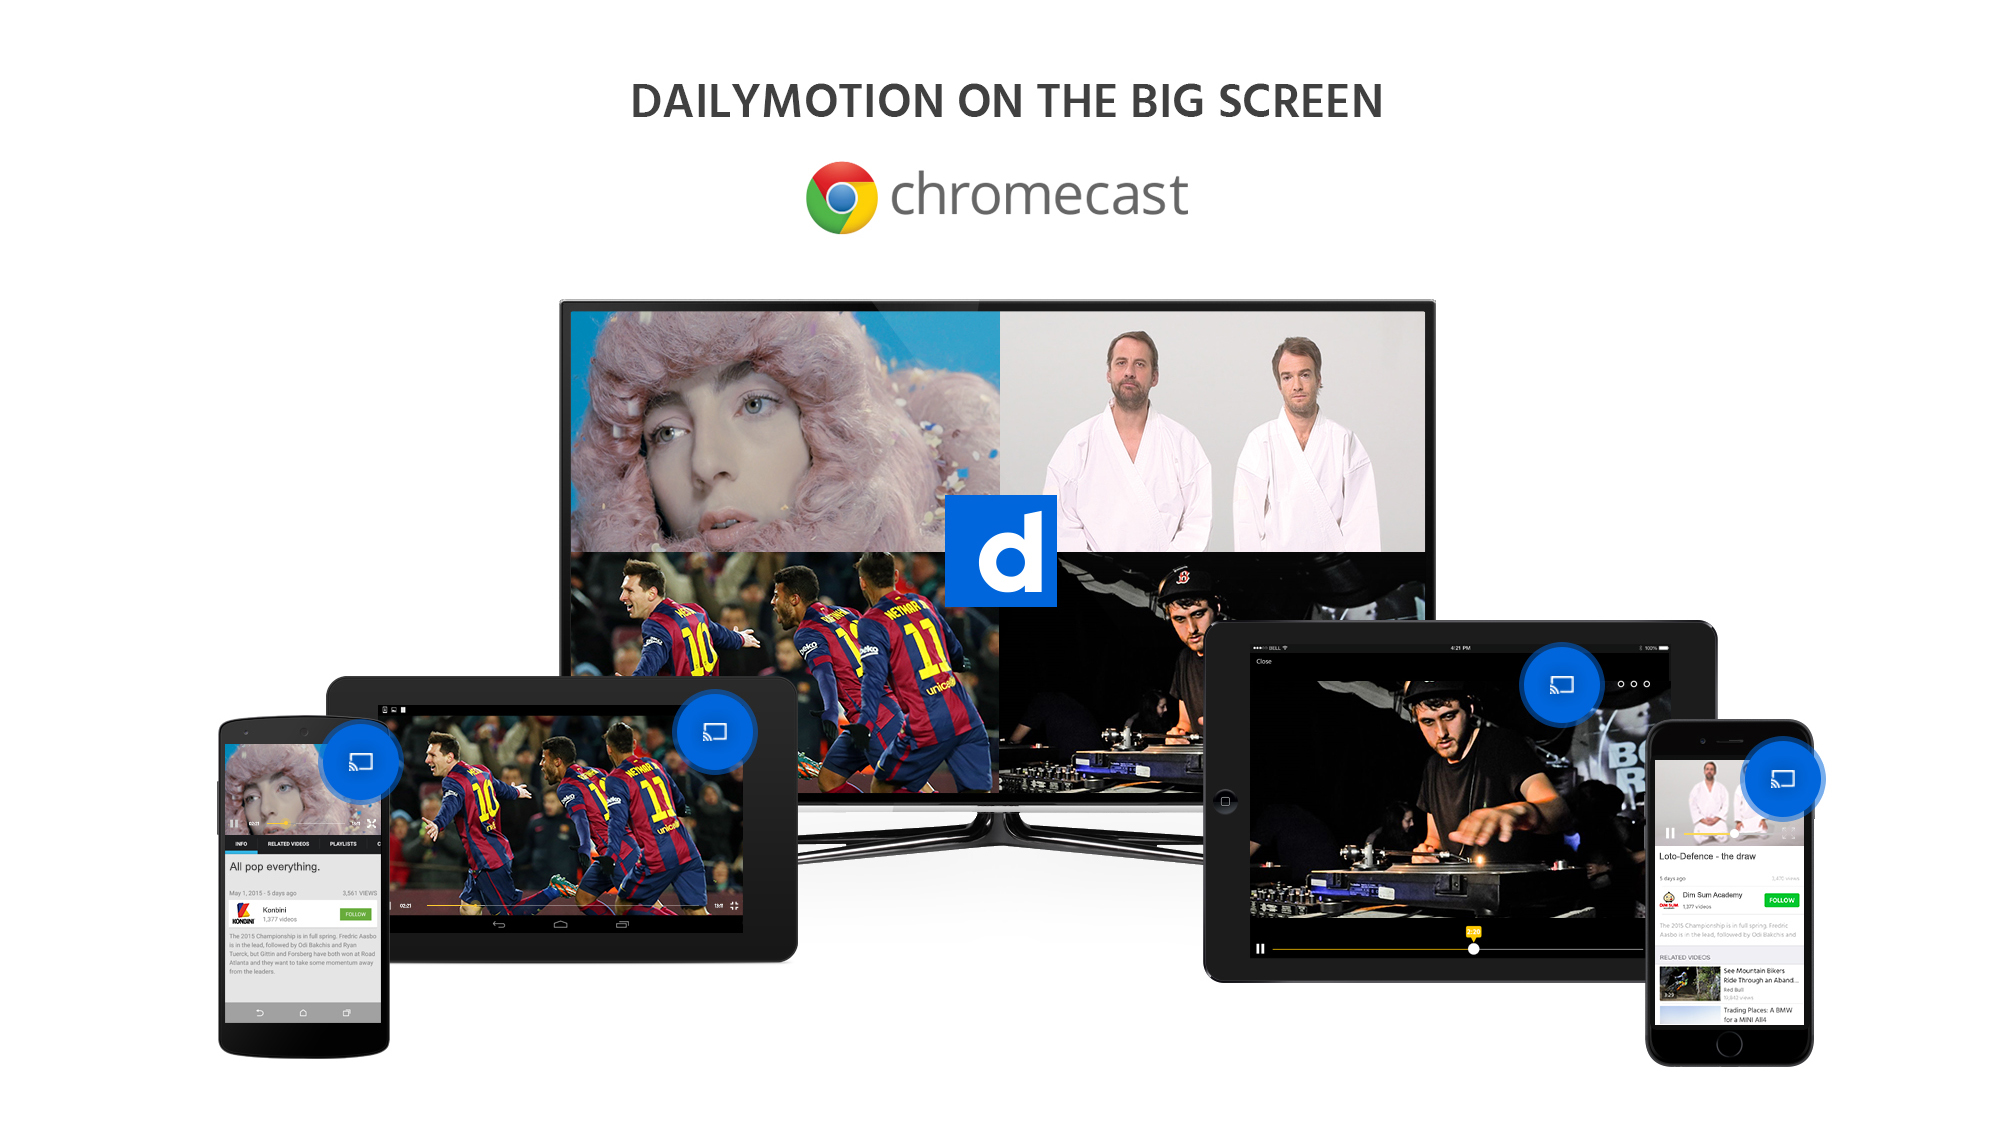 An image of Daily Motion being used on a number of devices